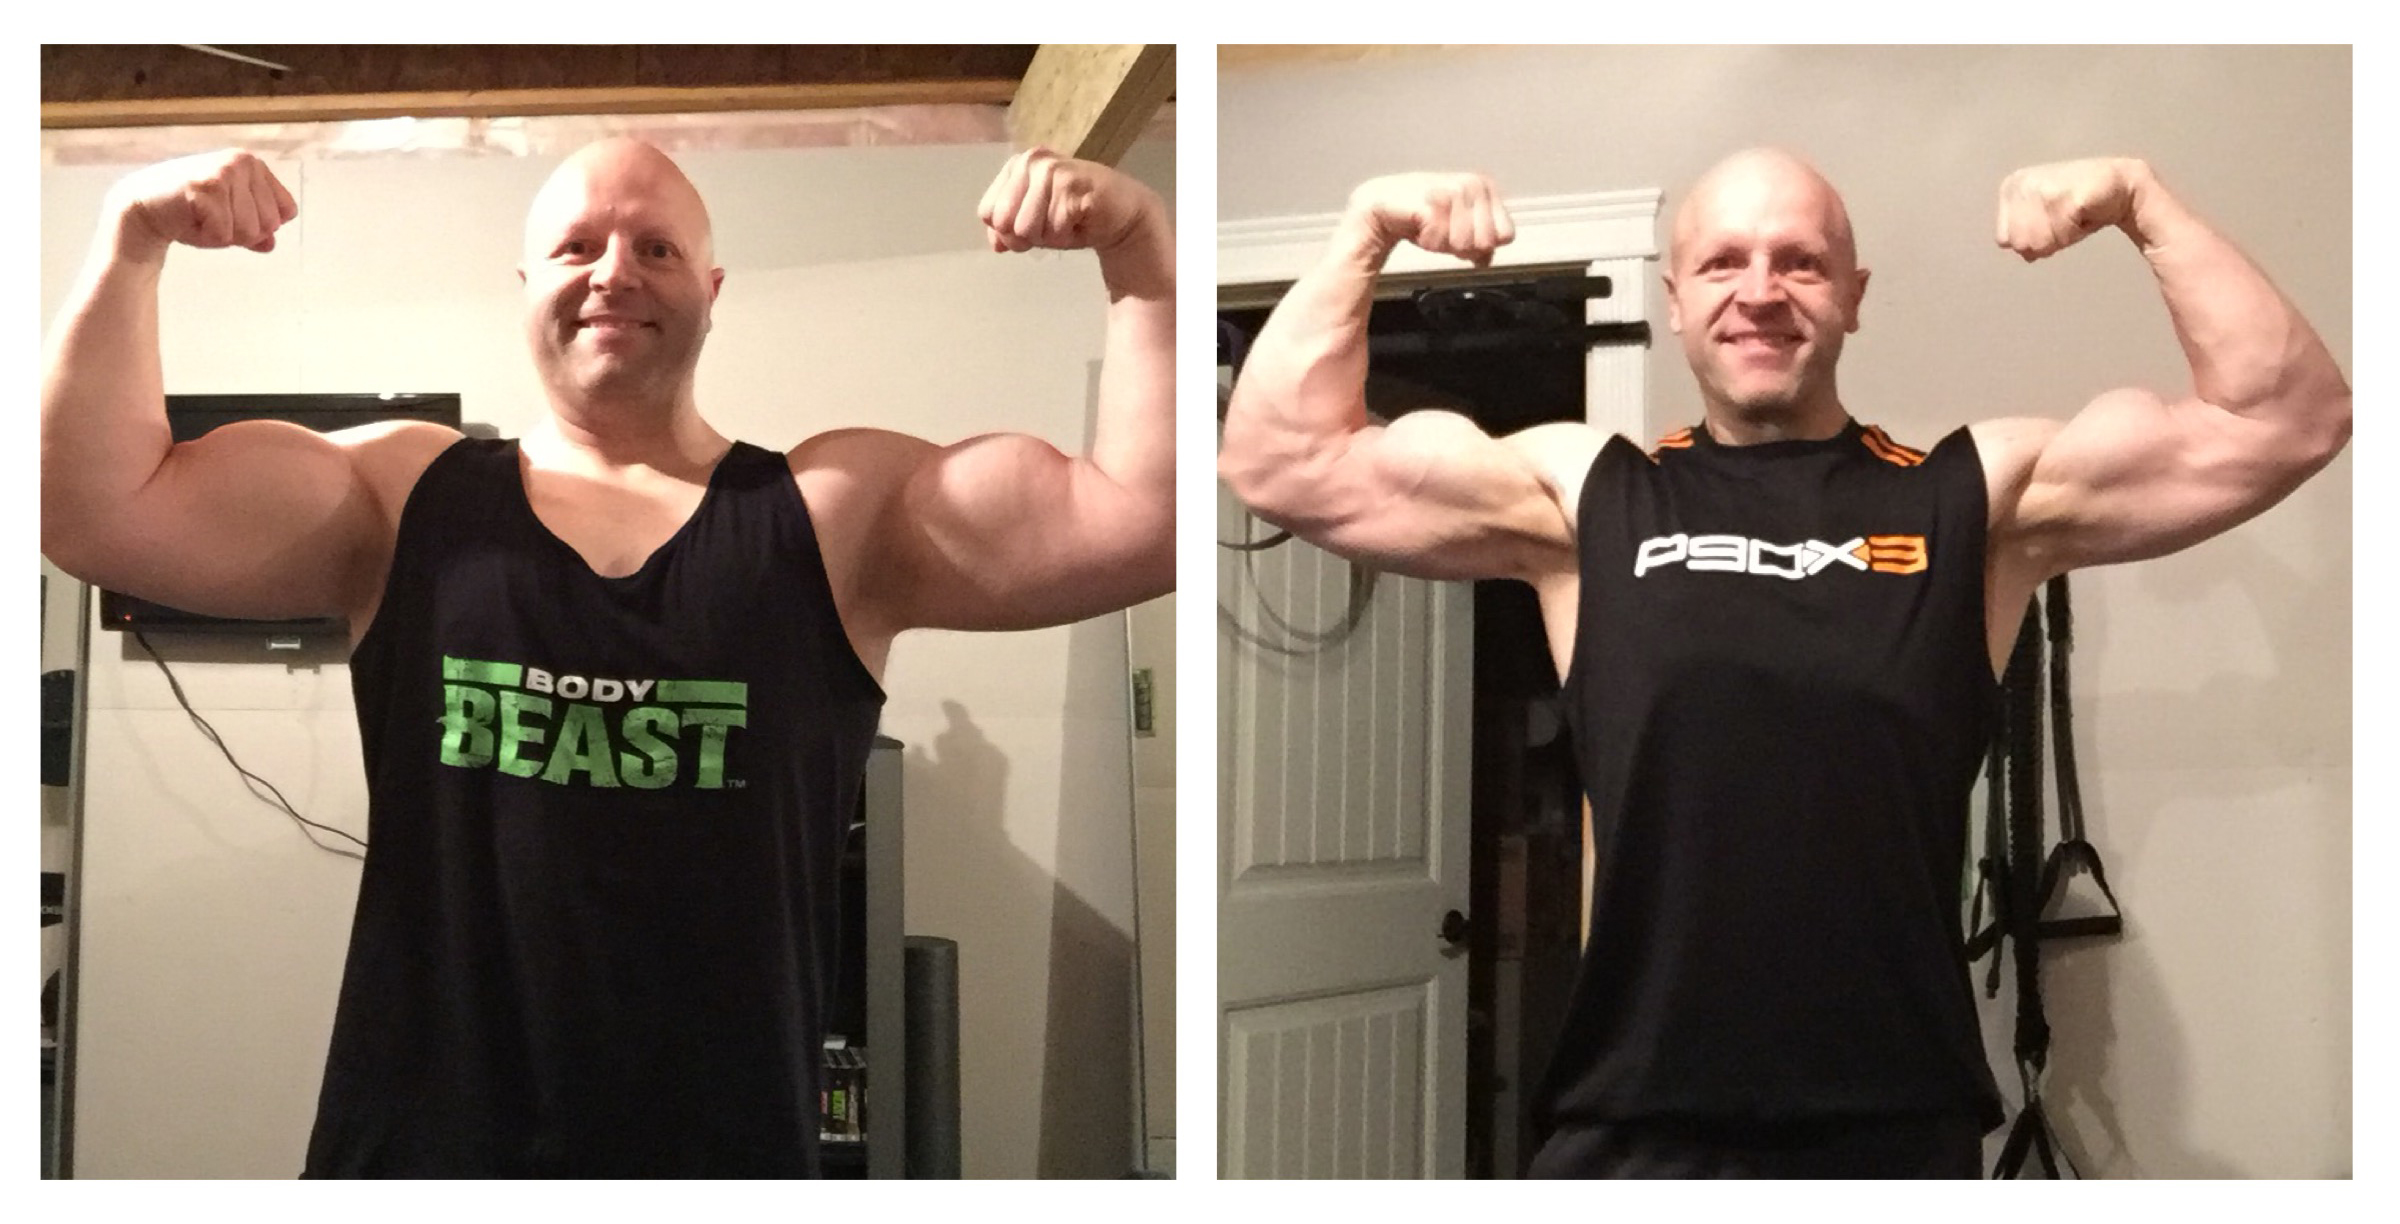 Colin Beachbody Before After Body Beast